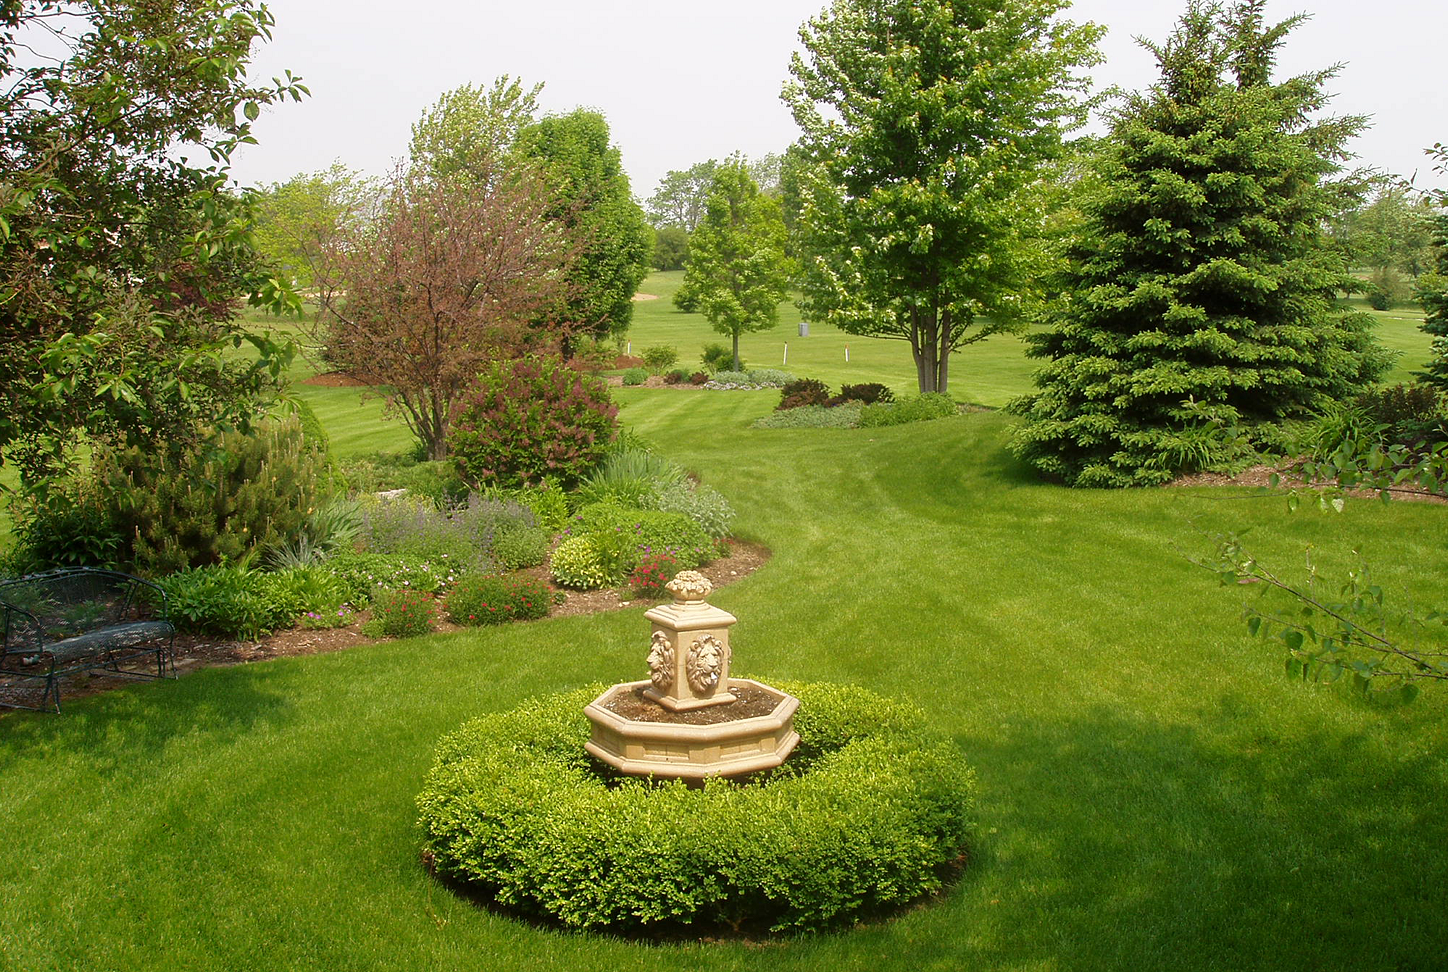 Landscape design before renovation in St Charles, IL